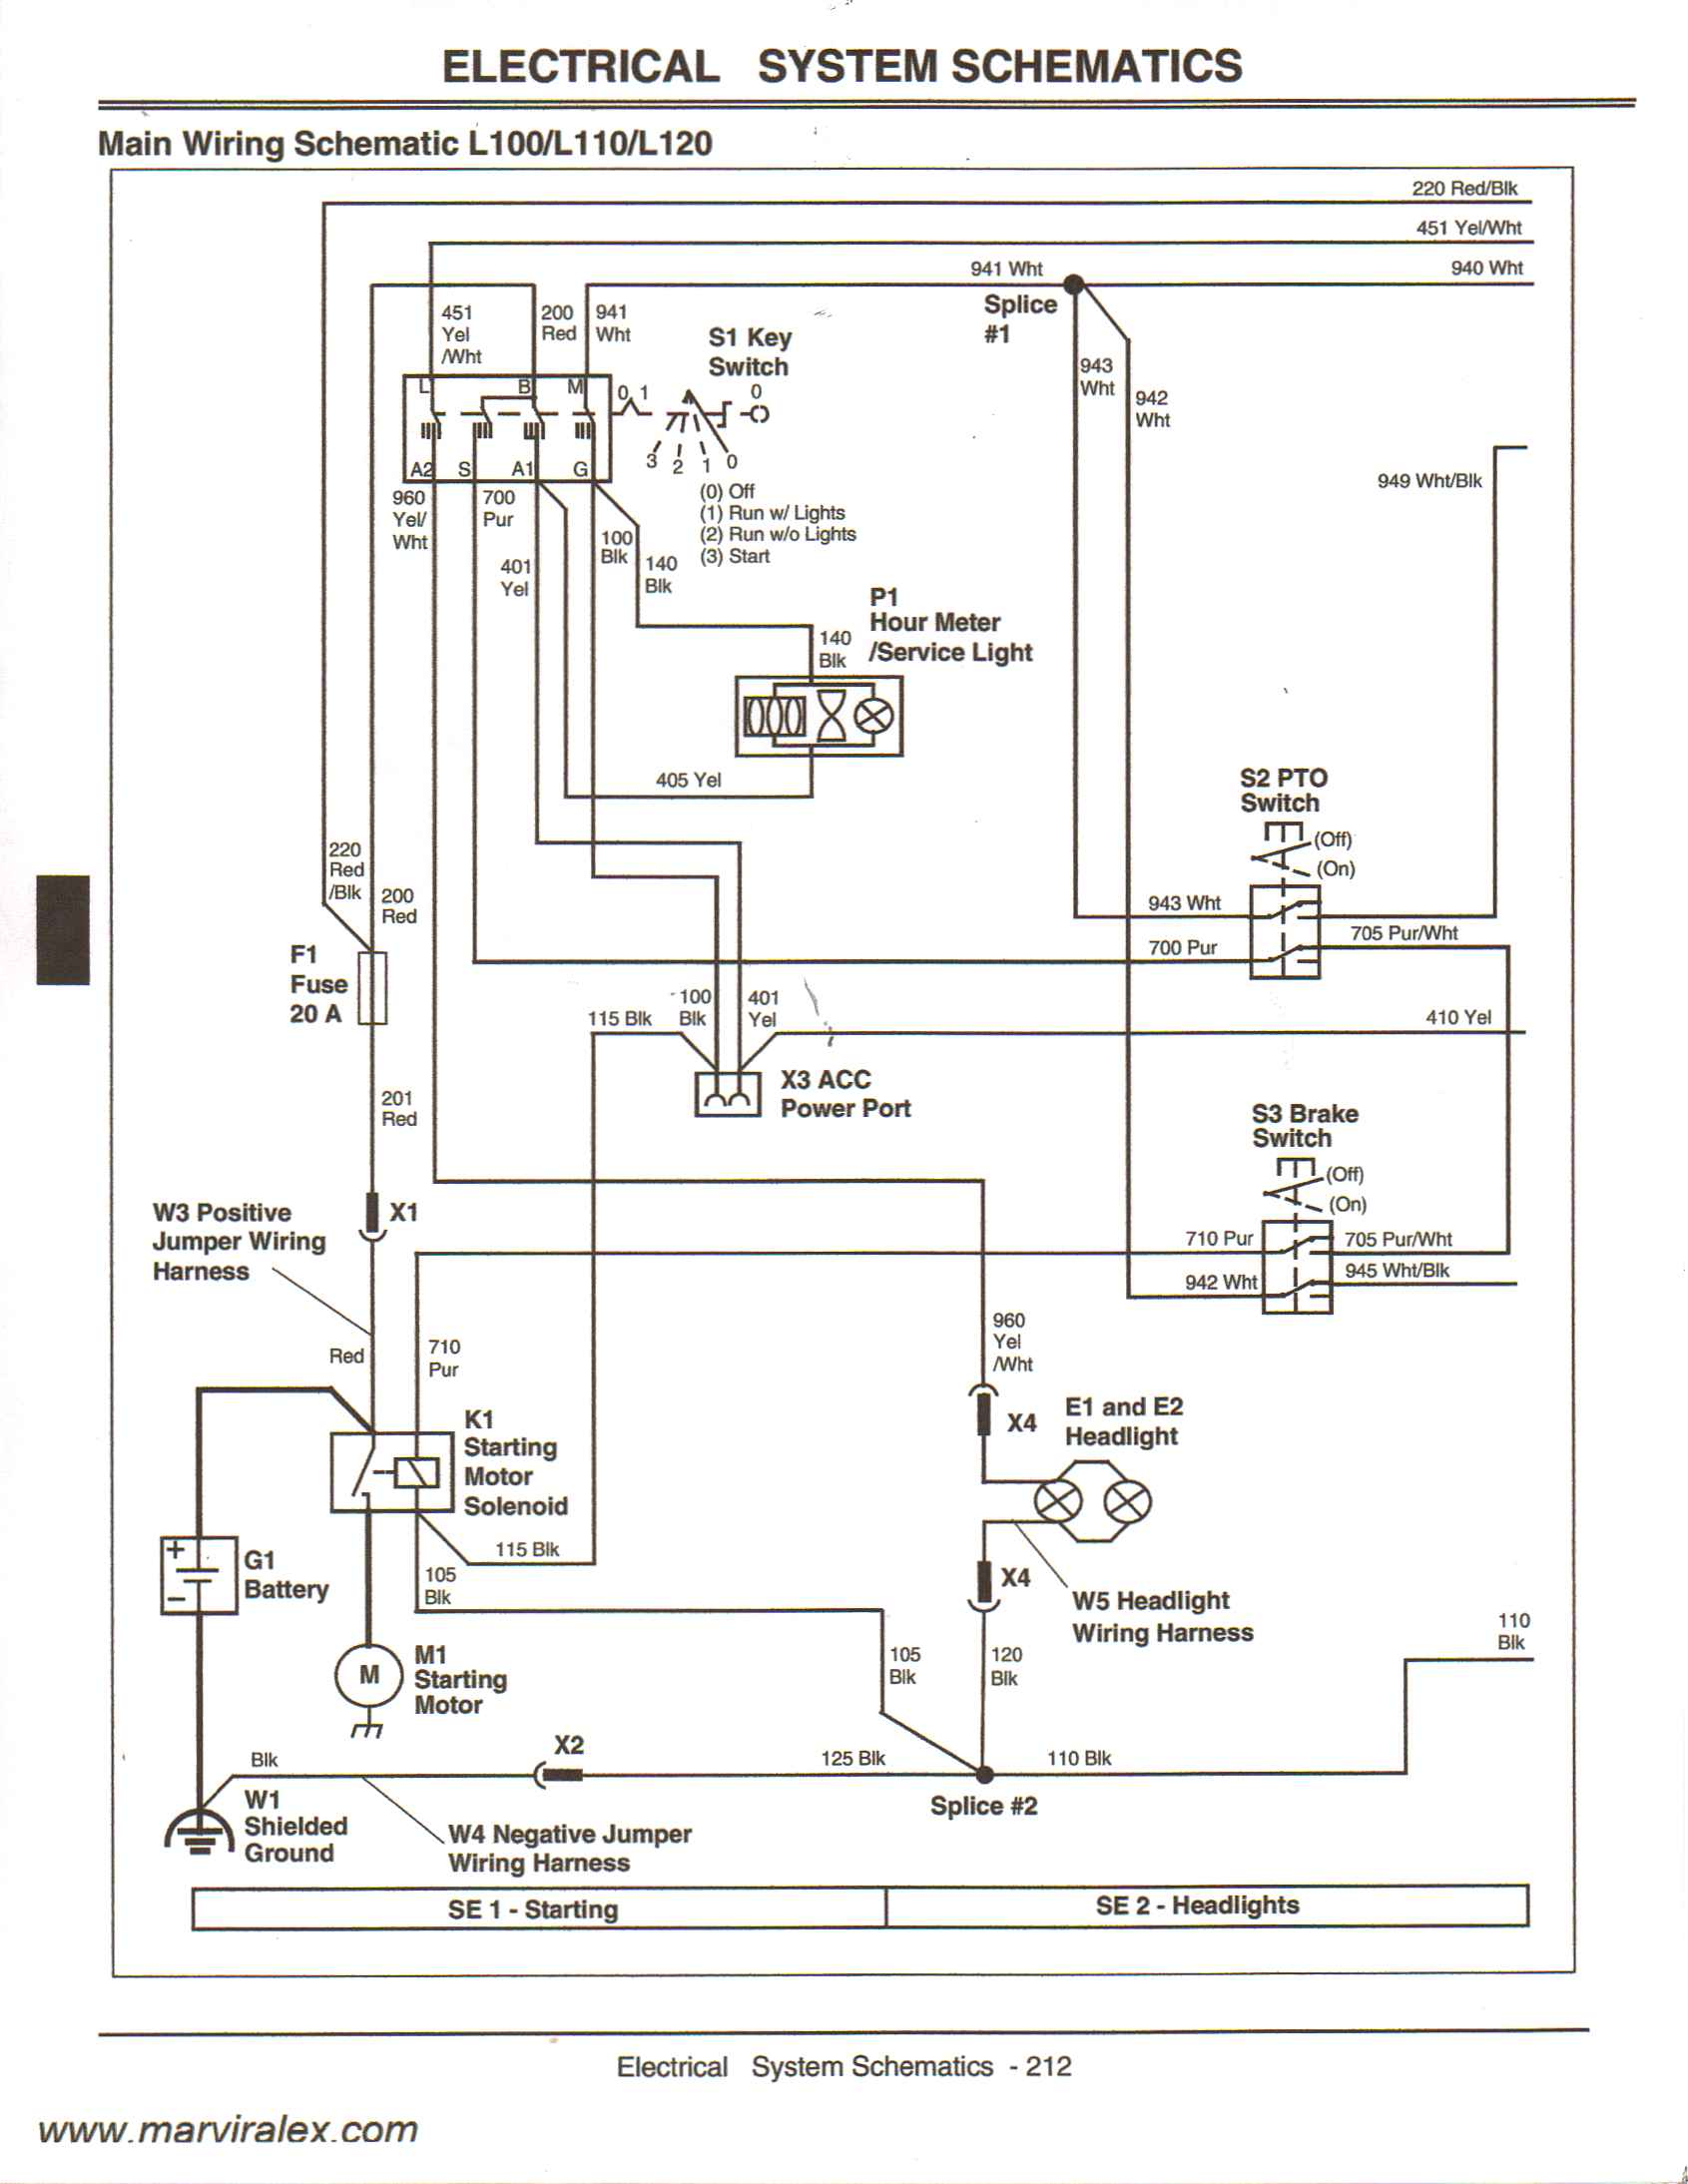 DIAGRAM] Jd Lx255 Wiring Diagram FULL Version HD Quality Wiring Diagram -  FUCHSIADIAGRAM.FARMACIA-GENERICA.ITfuchsiadiagram.farmacia-generica.it